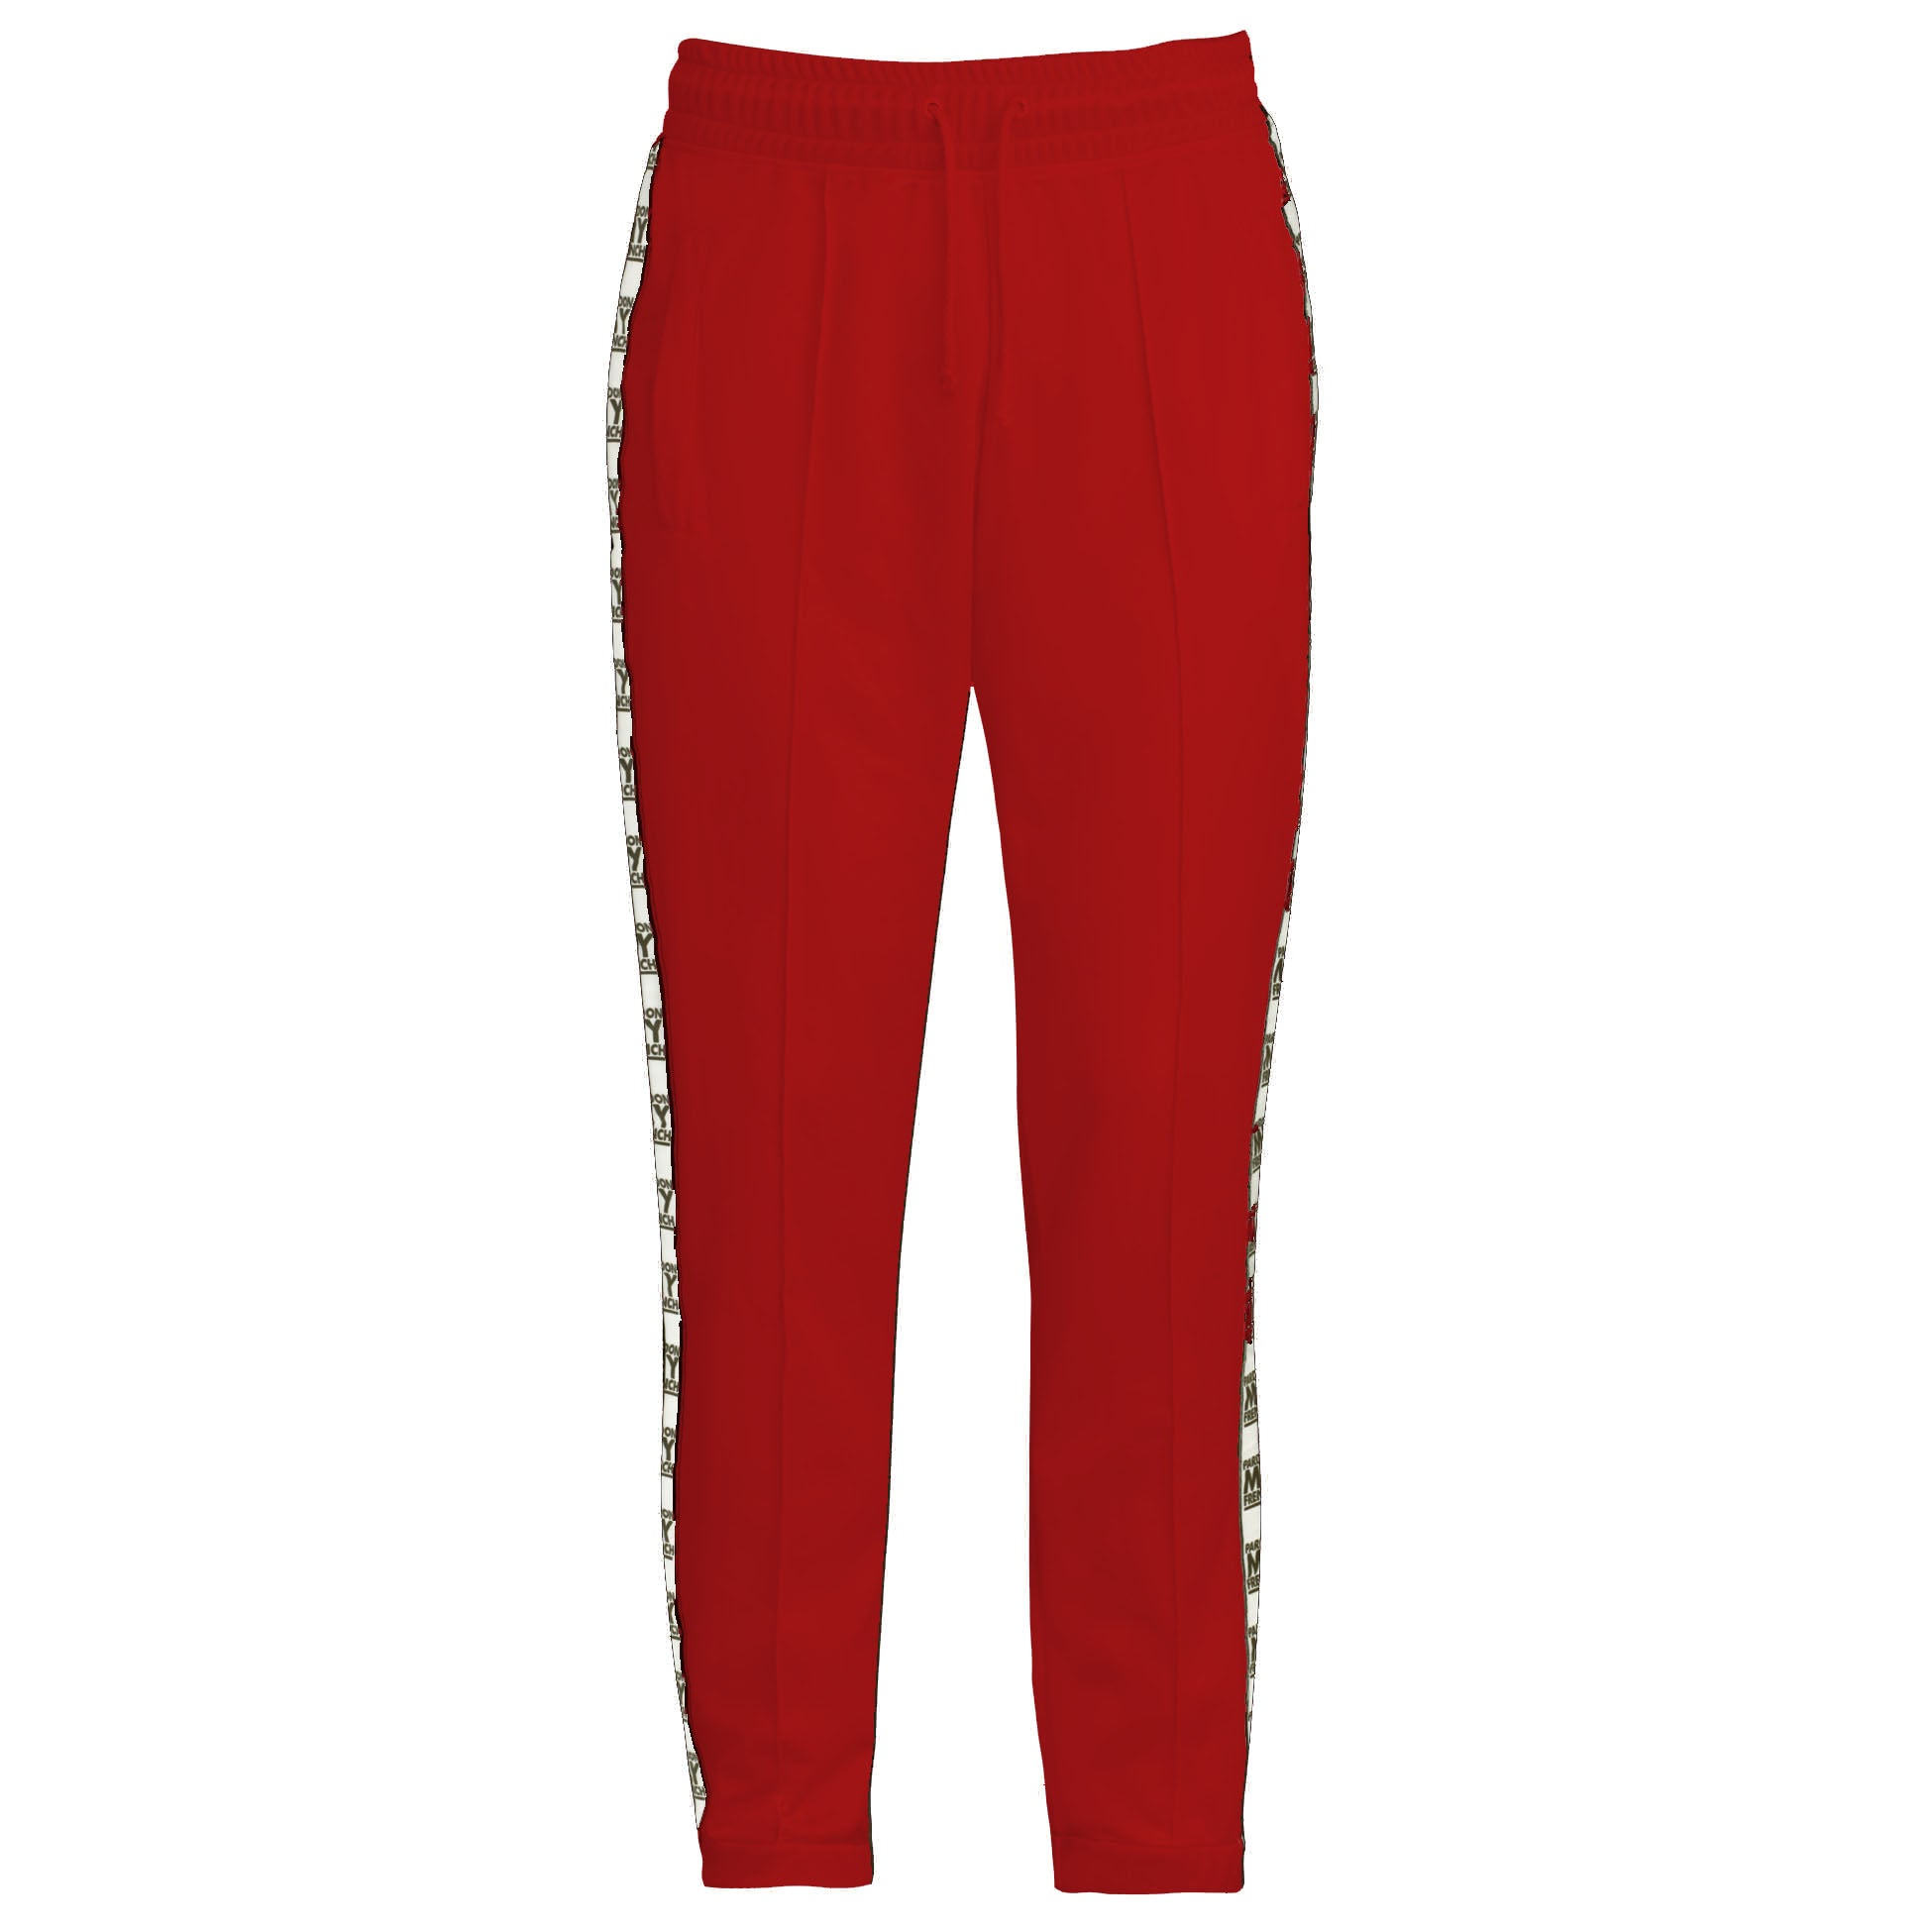 RED PARDON MY FRENCH RETRO PANTS